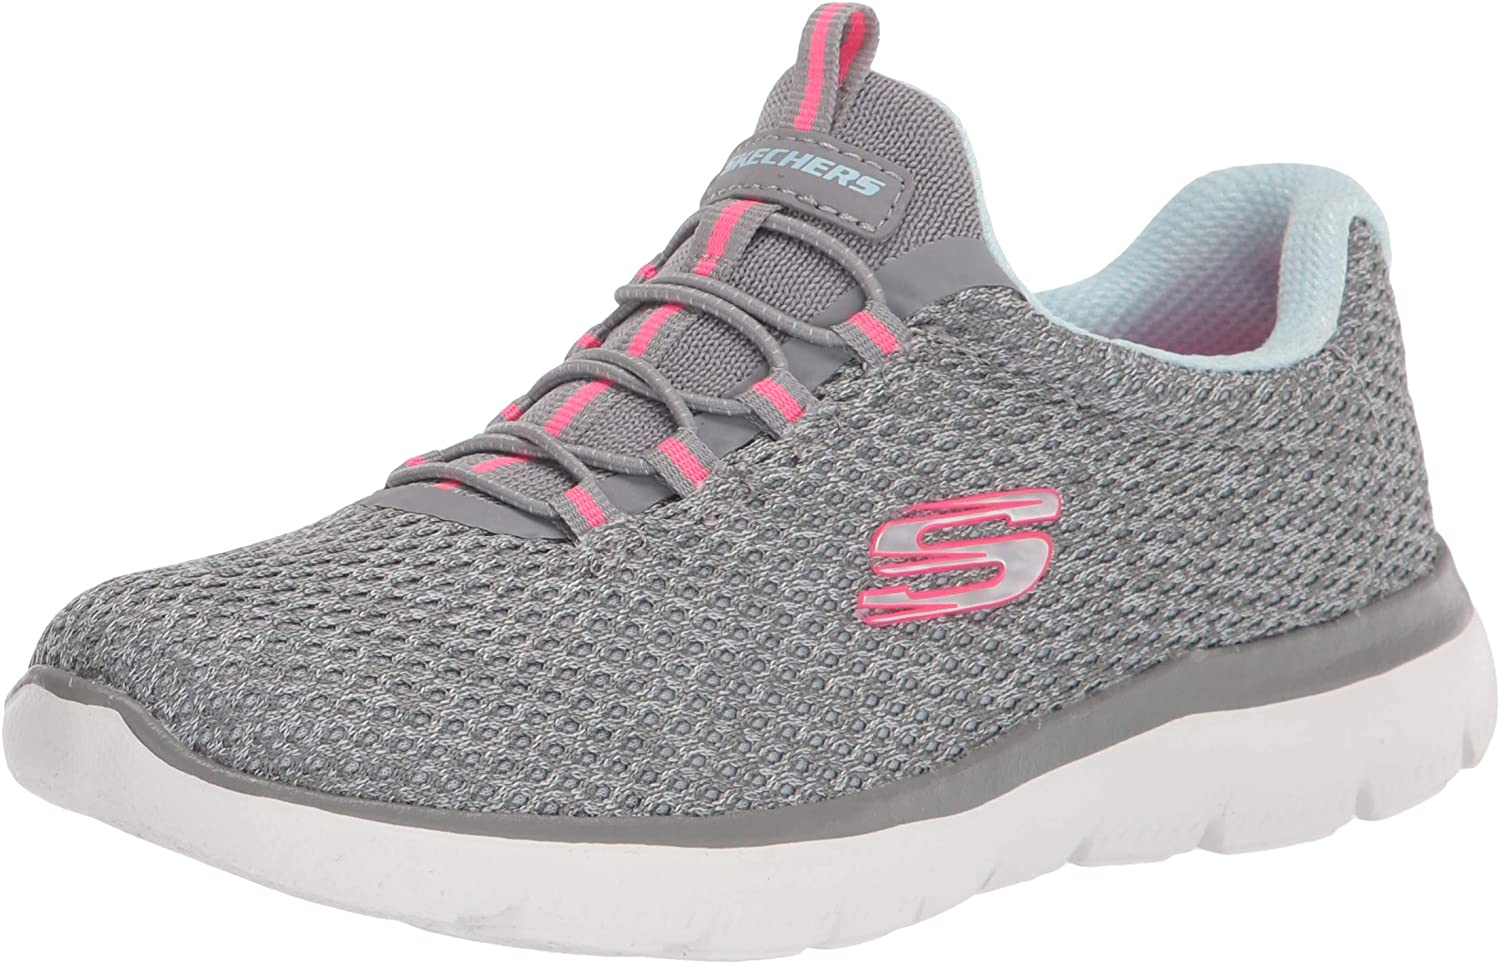 Skechers Performance Women's Chicago Mall Go Run Running Special Campaign Shoe Ride 6